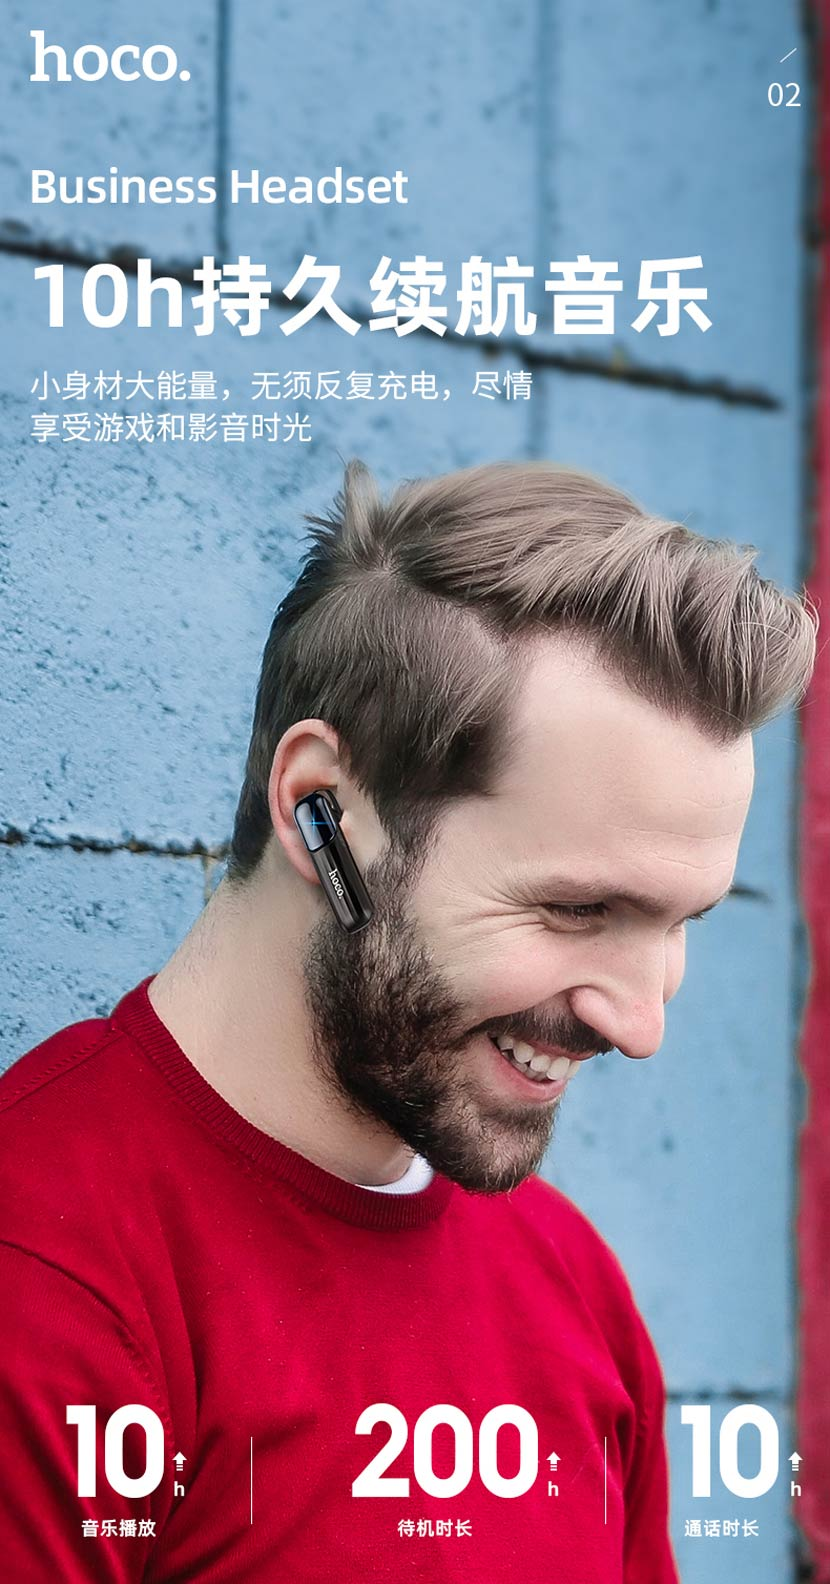 hoco news e57 essential business bt headset 10hours cn